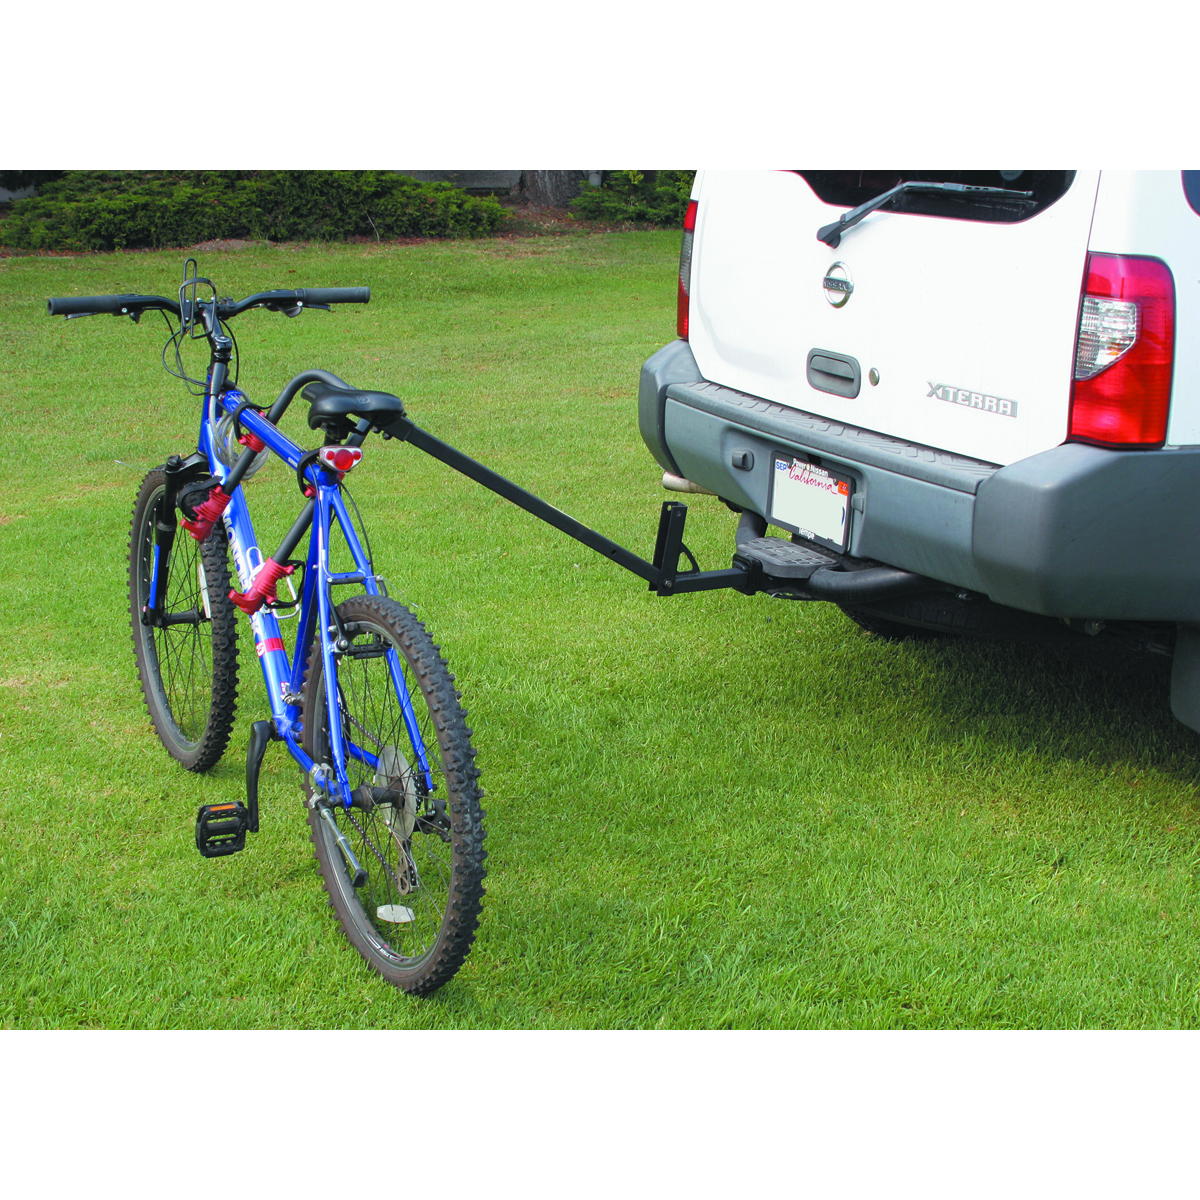 Bike Rack For Truck Bed Harbor Freight